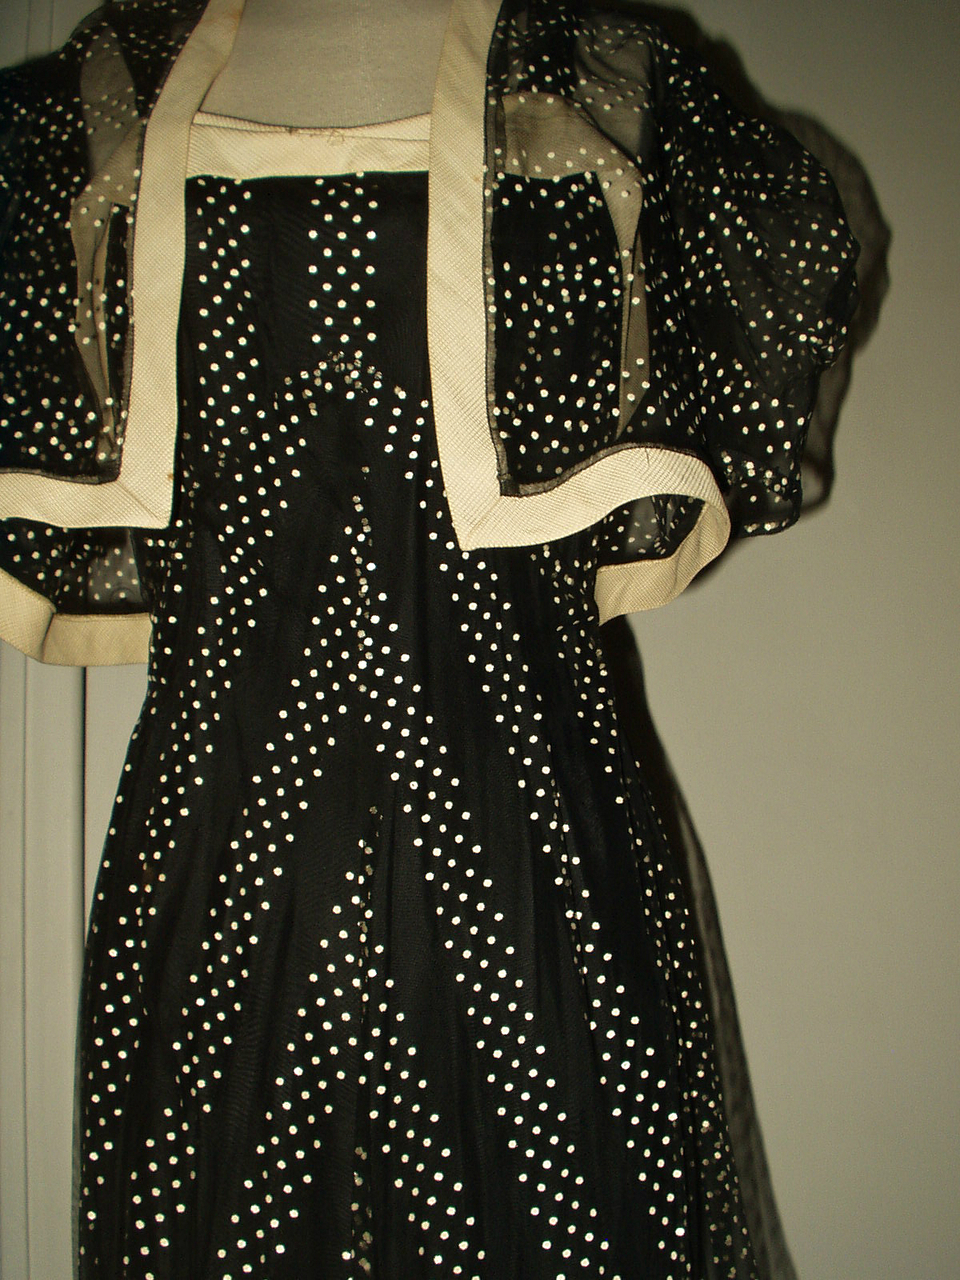 Vintage 1930 Evening Gown Party Formal Dress Sheer Black Dotted ...